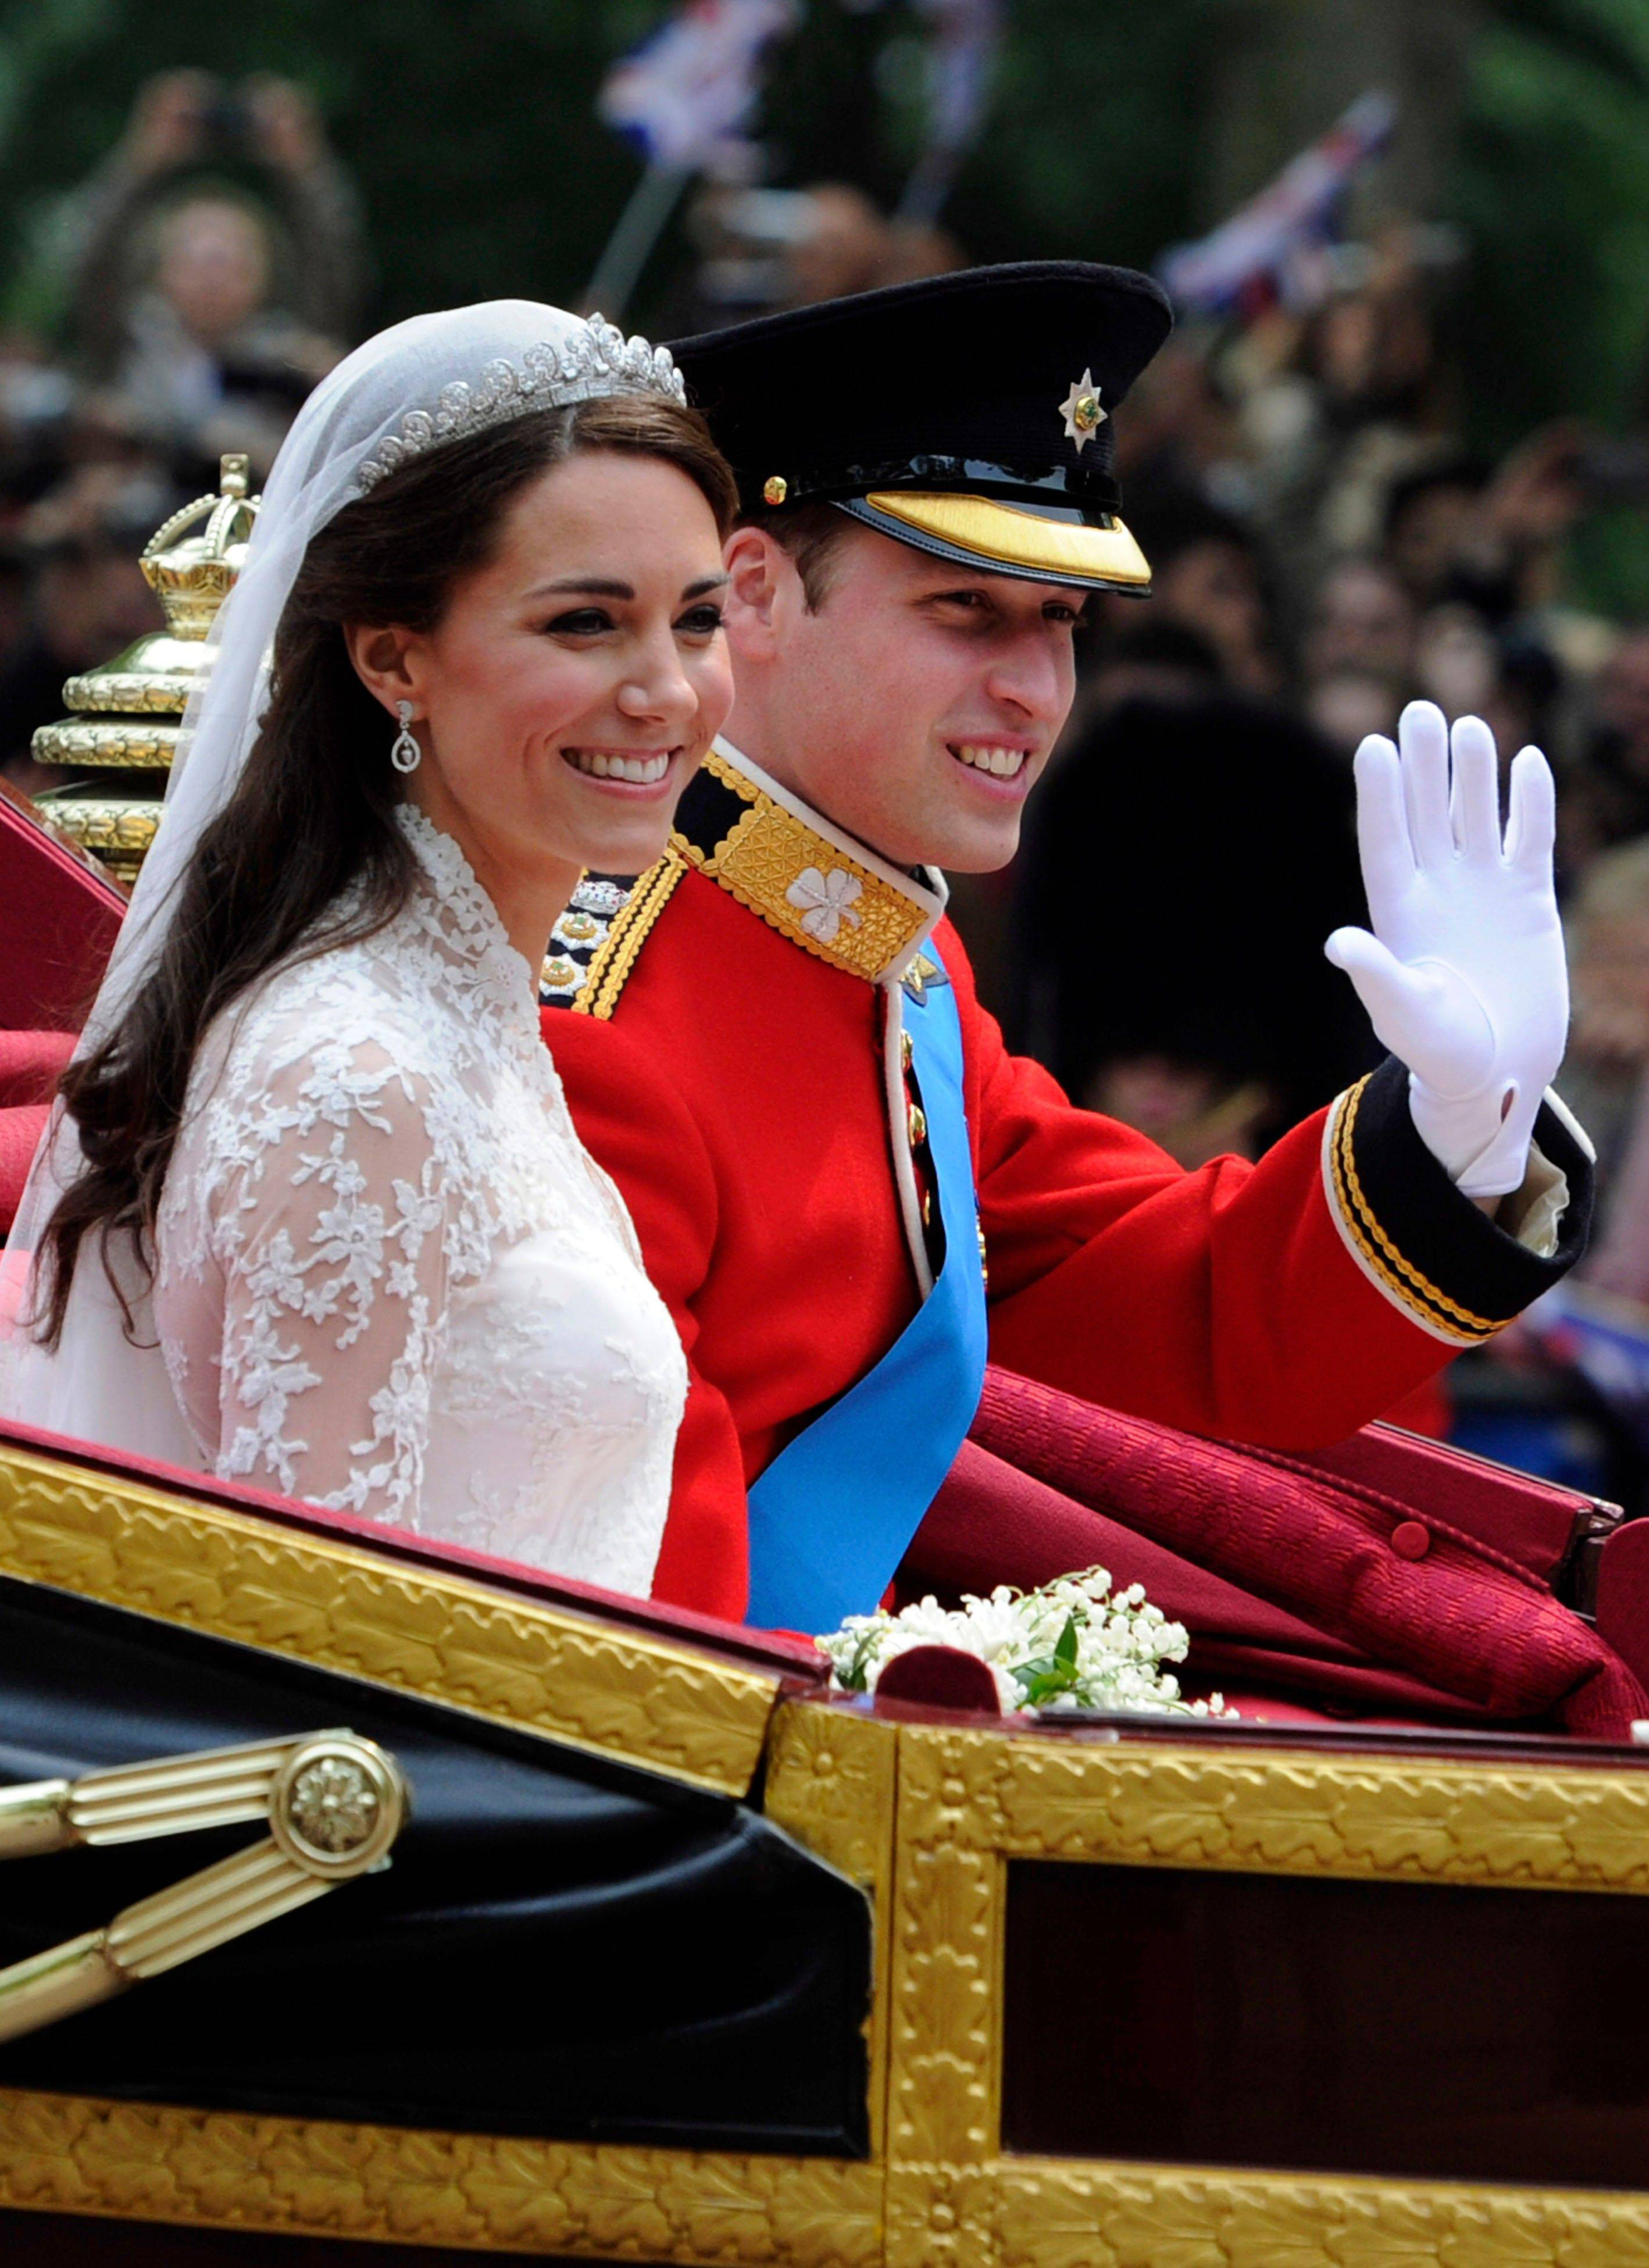 Britain's Prince William and his bride Kate, Duchess of Cambridge, leave Westminster Abbey, London, following their wedding, Friday April 29, 2011.